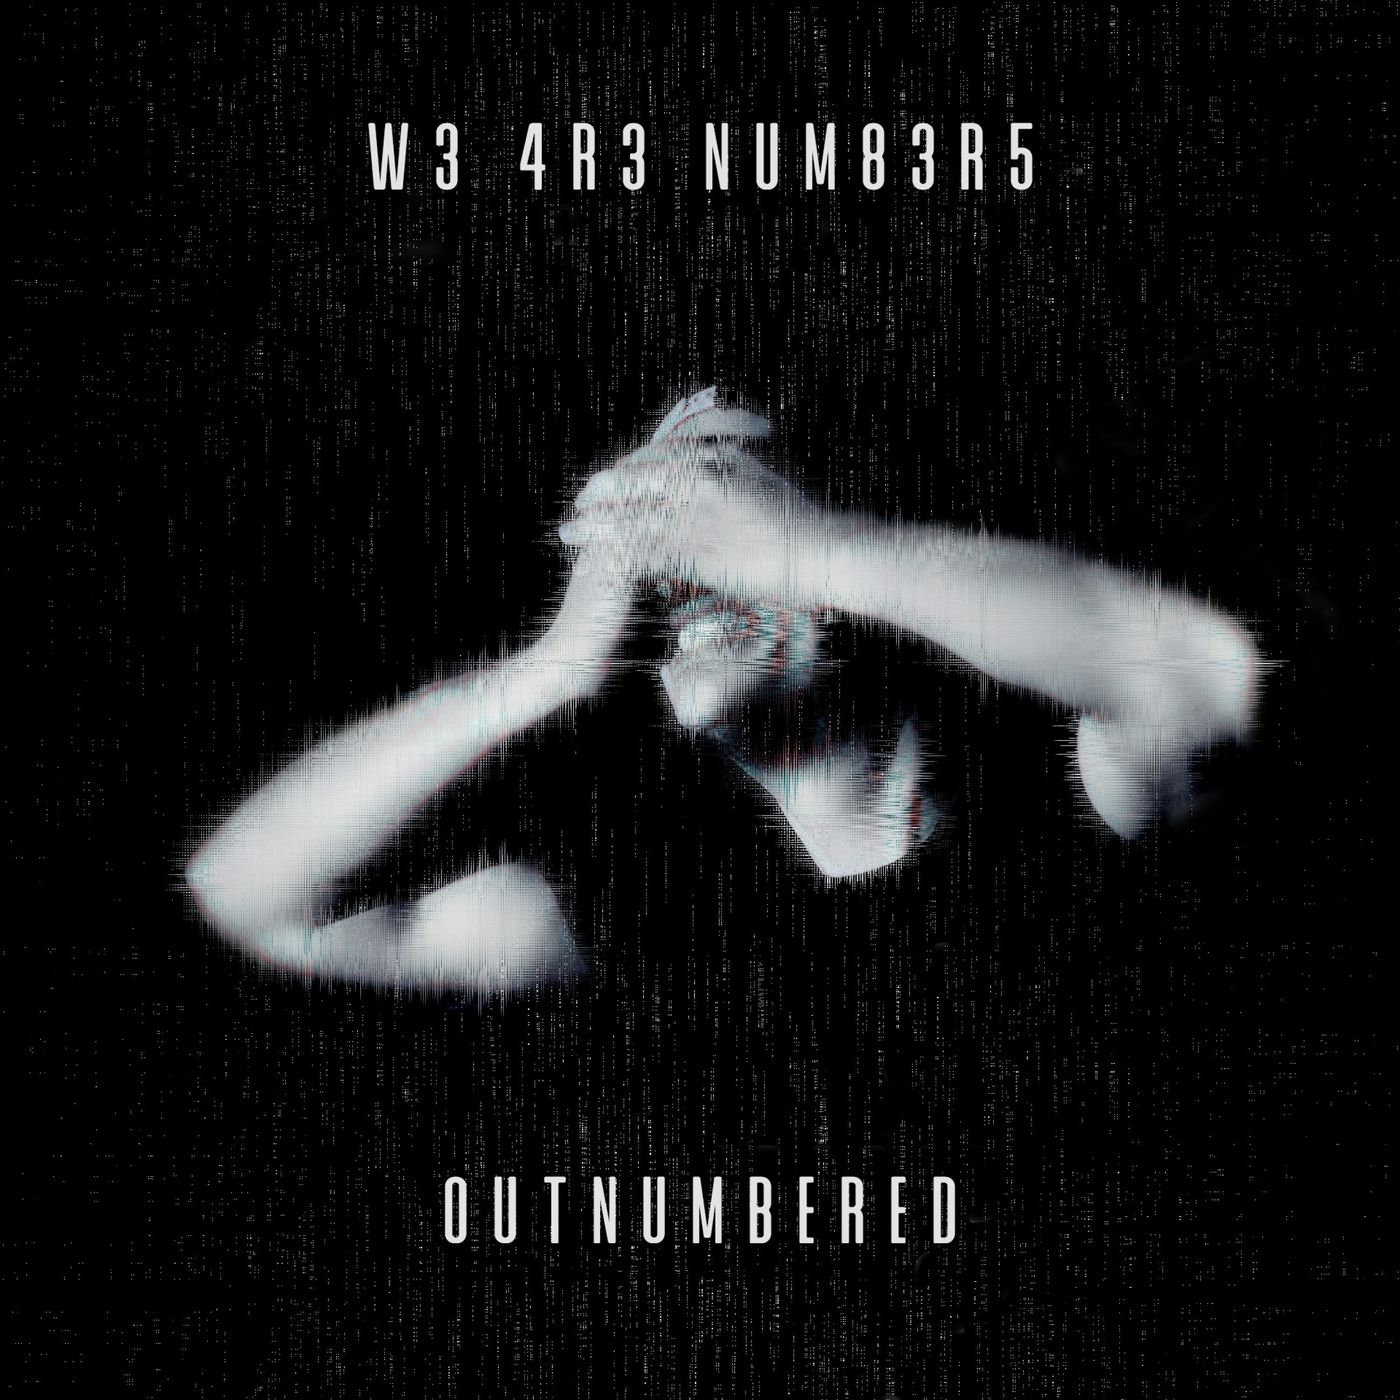 We Are Numbers - Outnumbered [single] (2020)